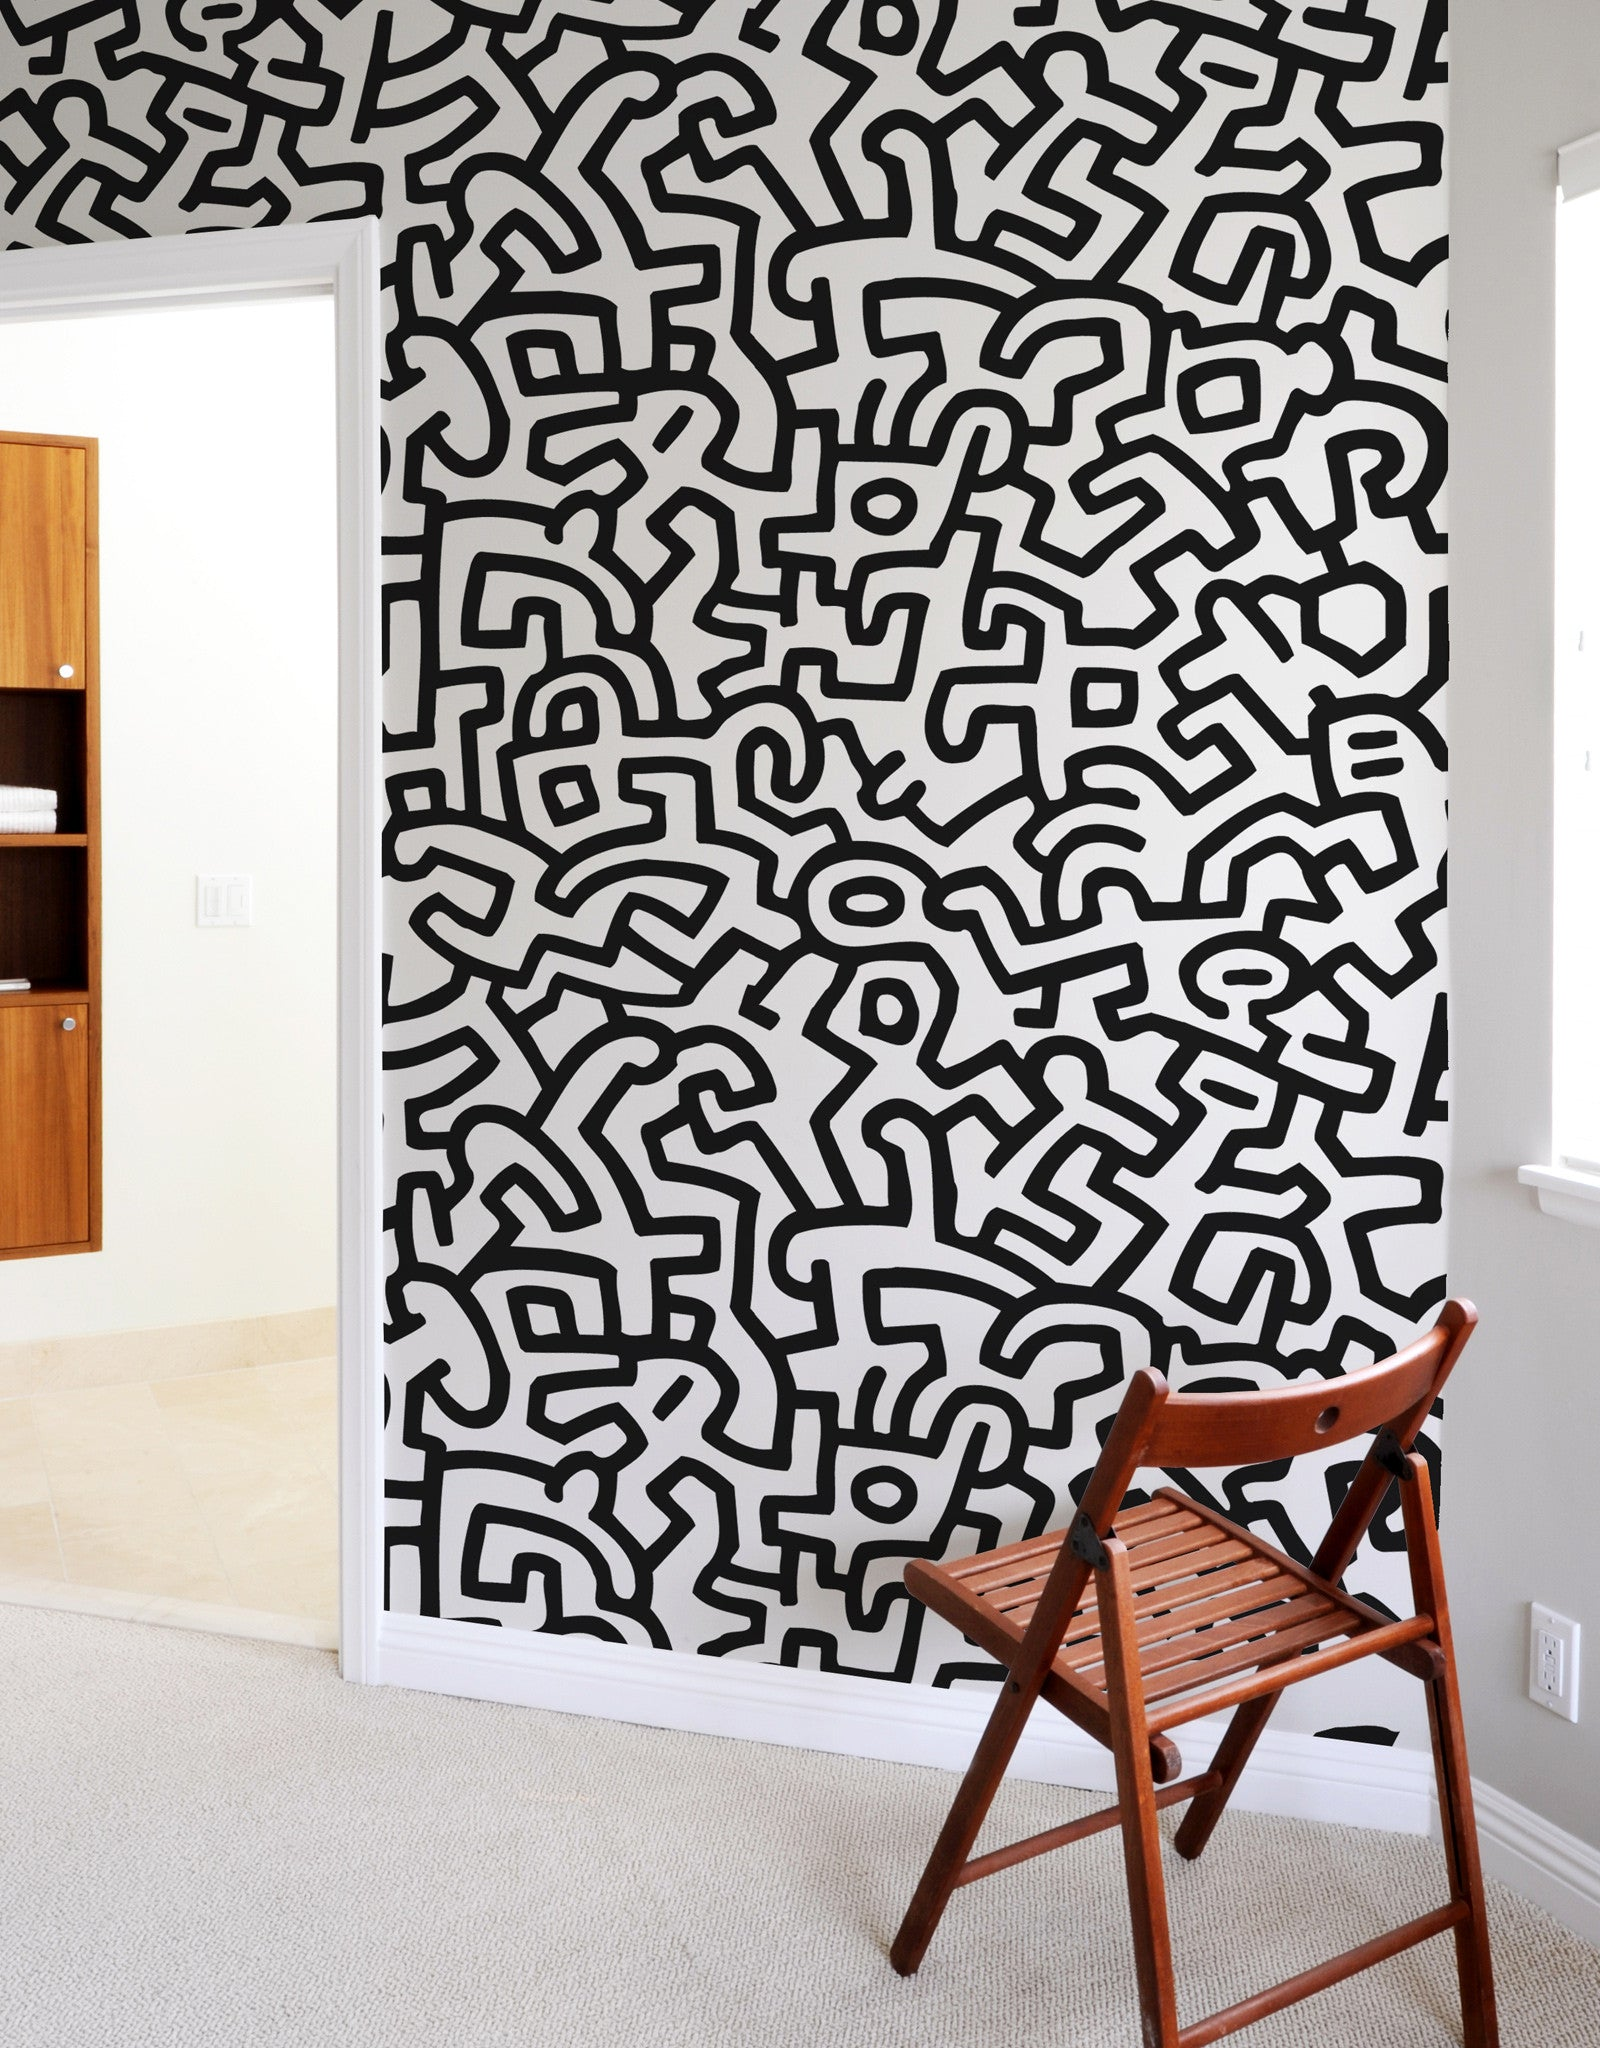 Vinyl Sticker Wall Keith Haring Adhesive Wall Tiles Stick On Wall Tiles Blik